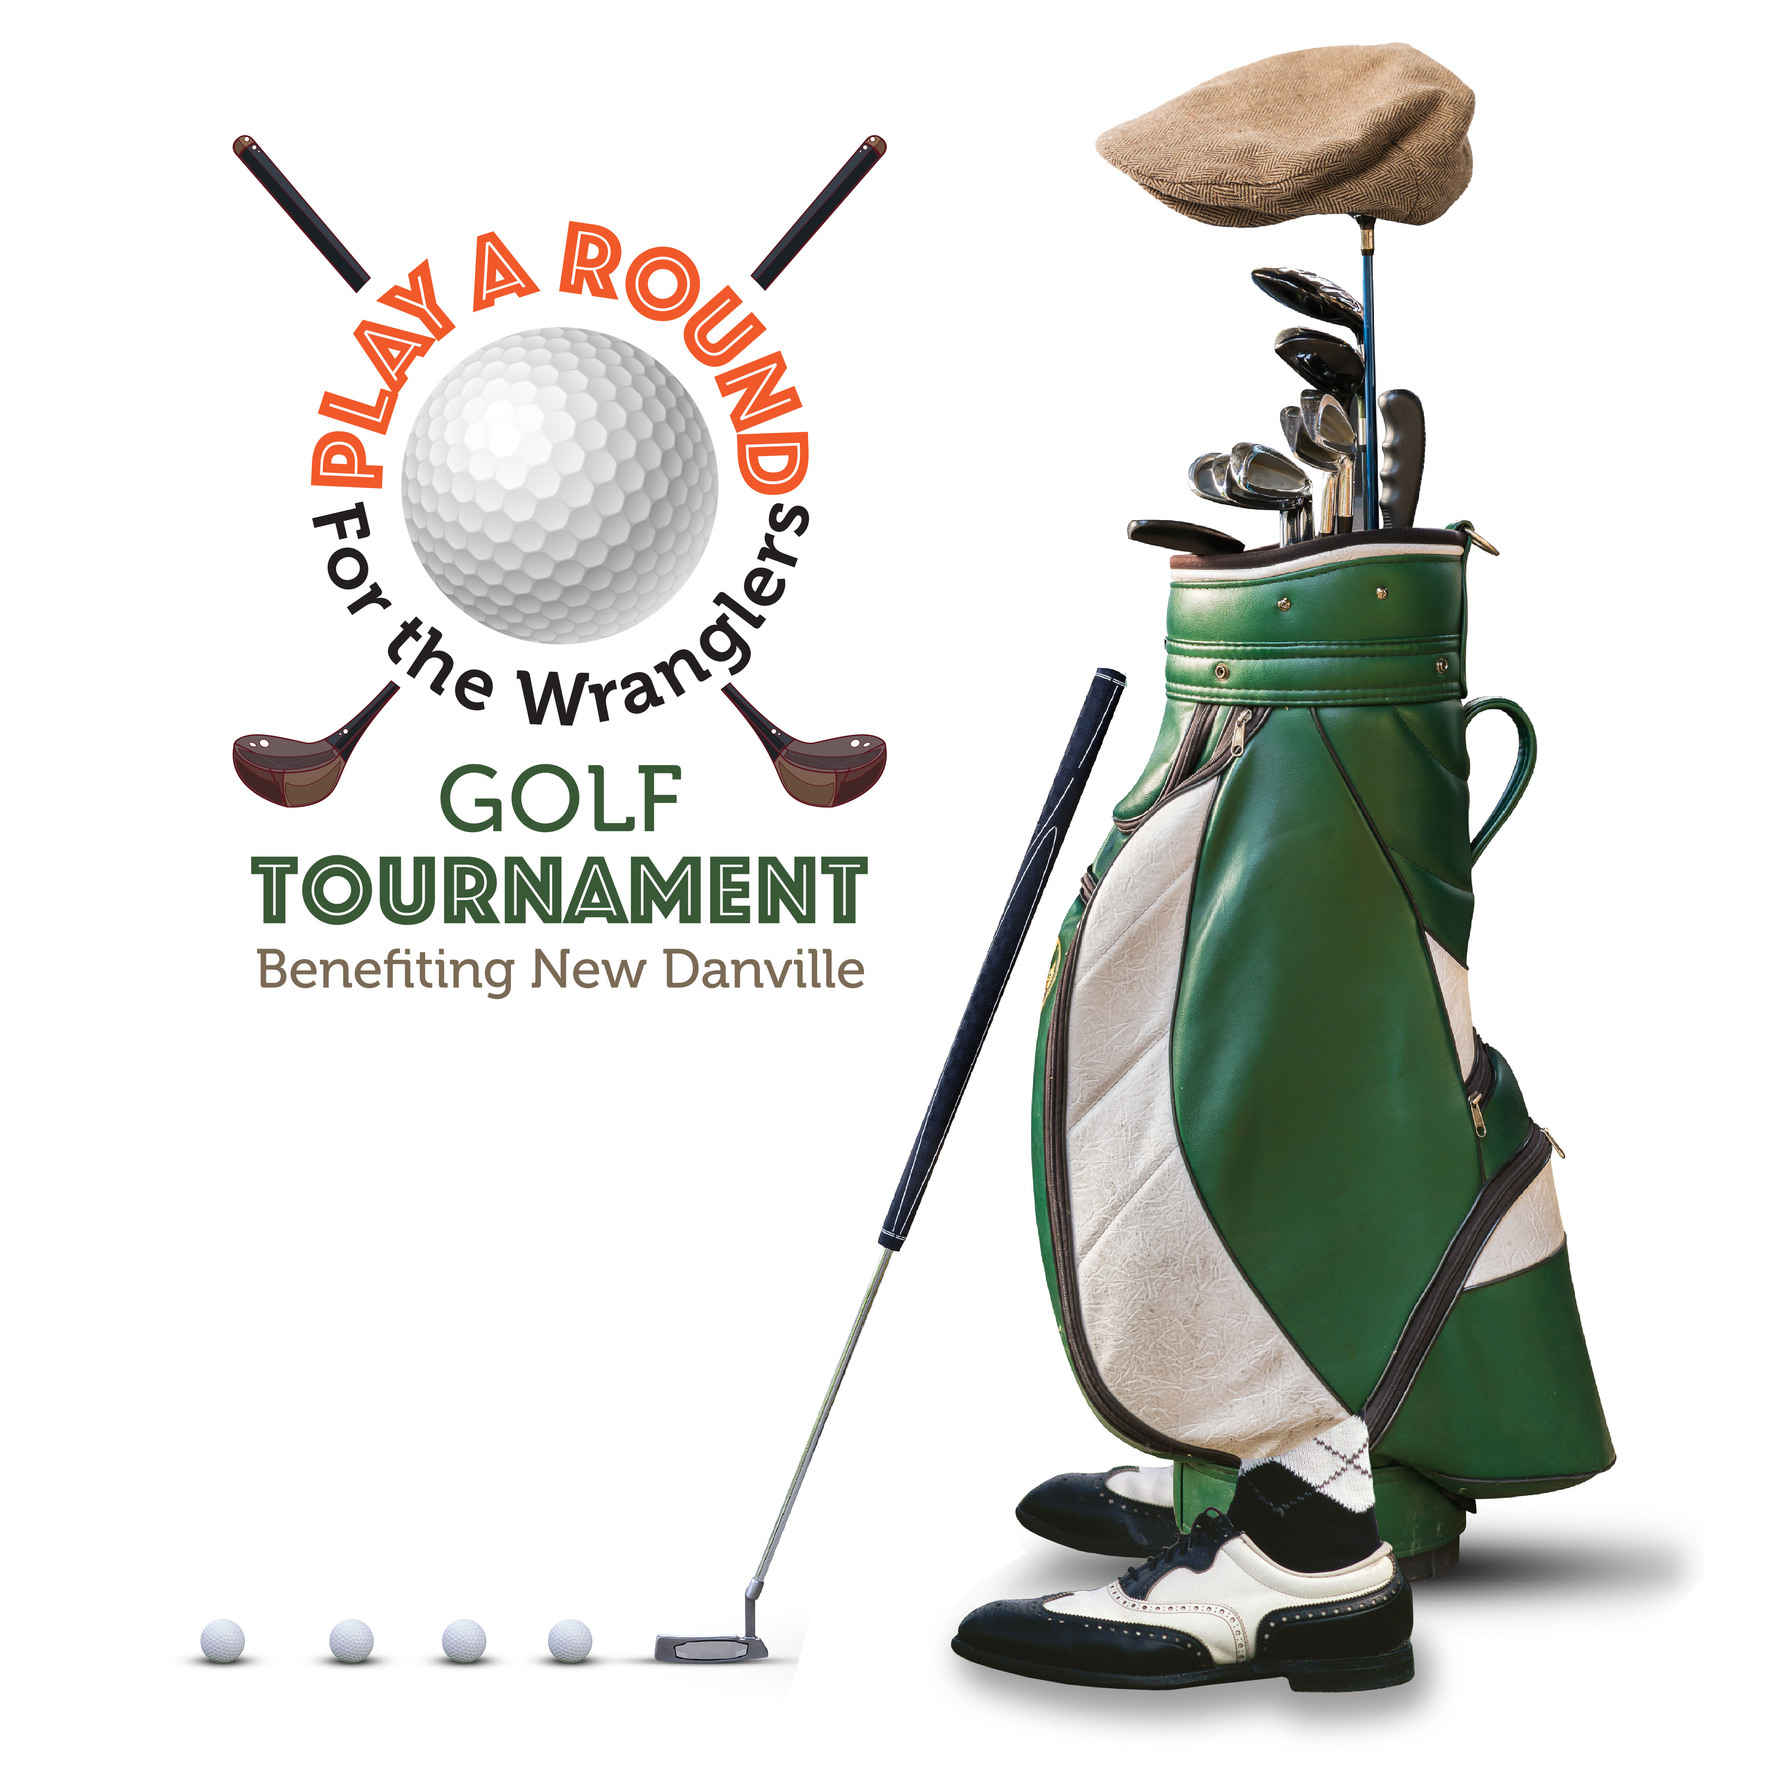 PLAY A ROUND for the Wranglers image